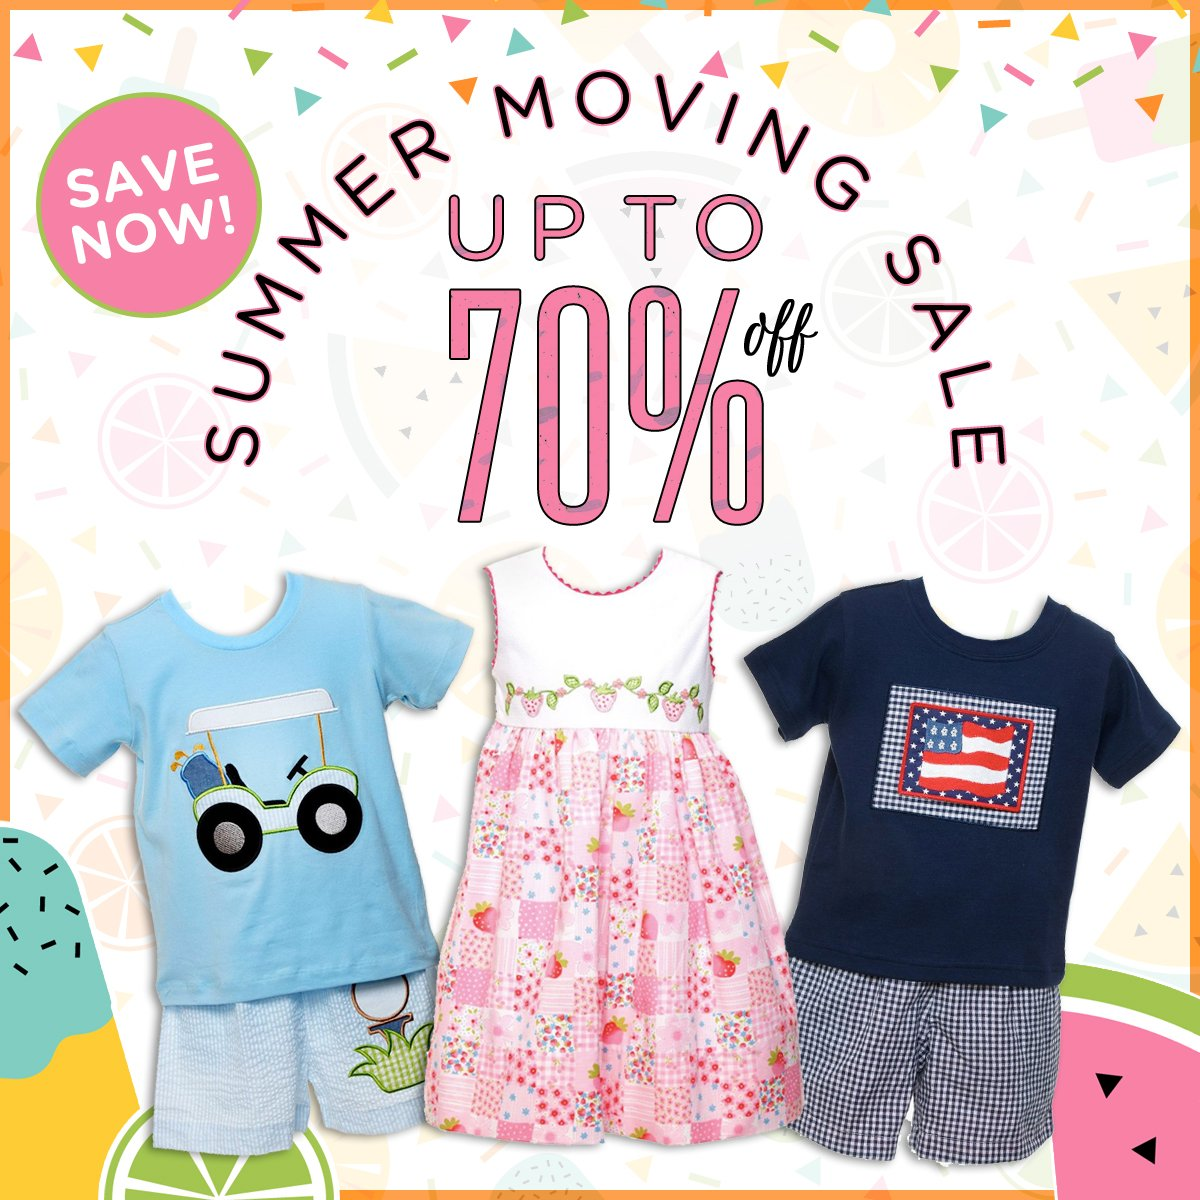 children's clothing sale